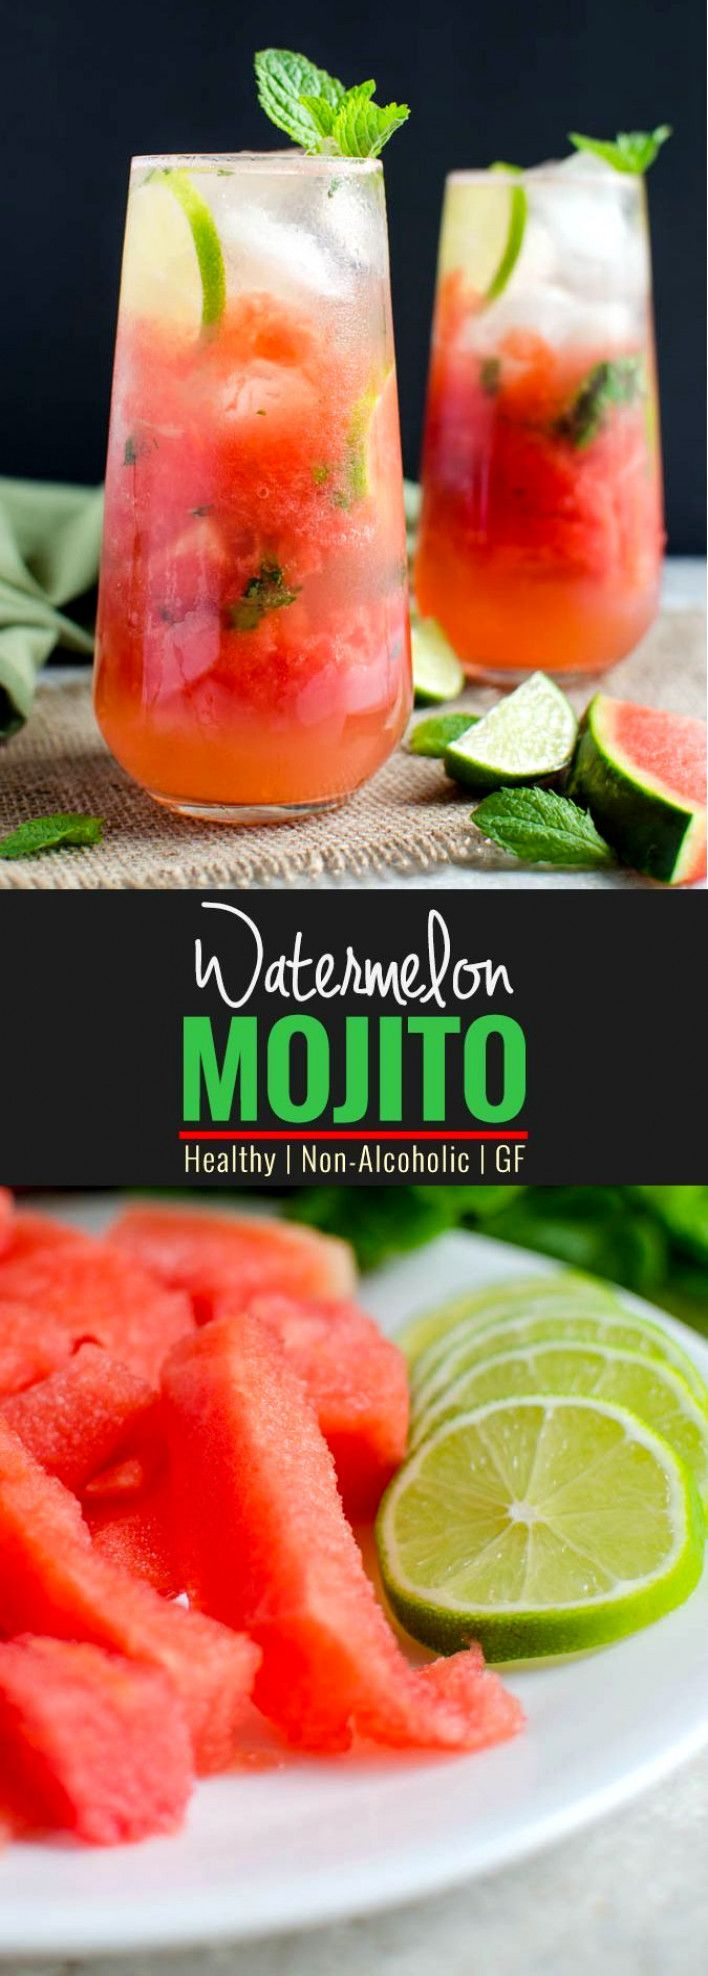 Quick And Easy Watermelon Mojito Recipe | Healthy Summer Drink #summeralcoholicdrinks